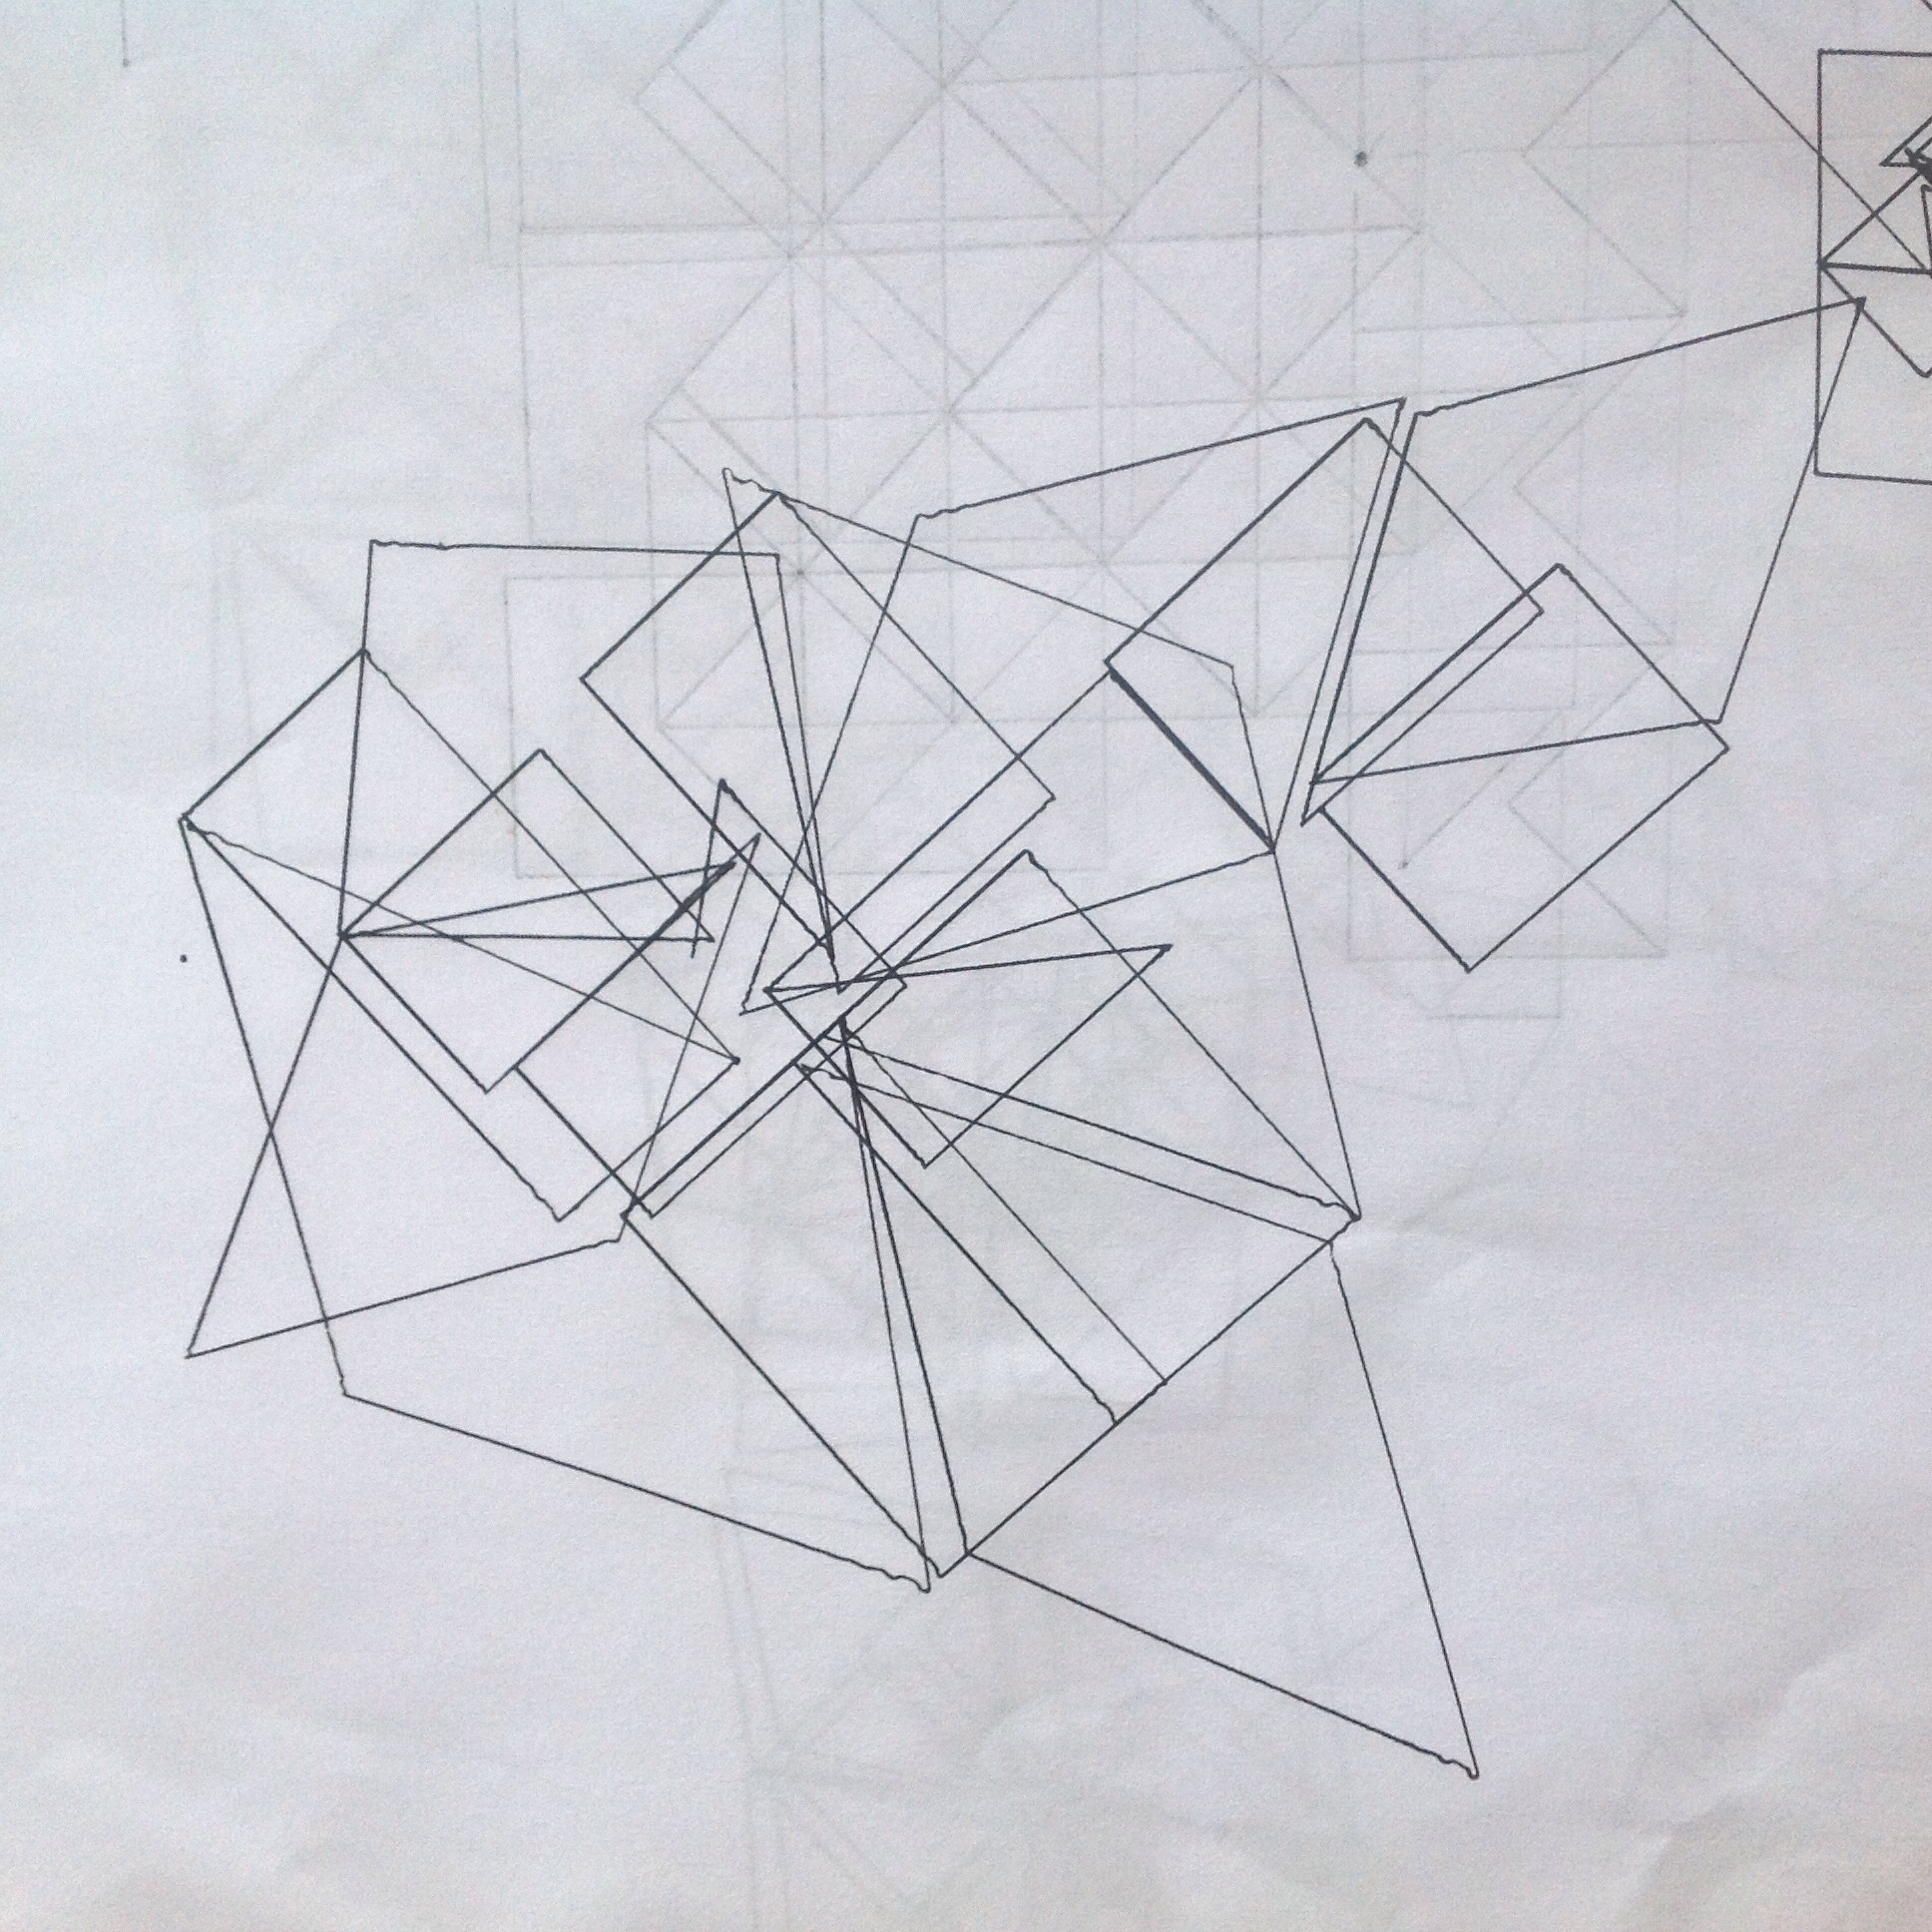 An Example of a Geometric Brain Drawing